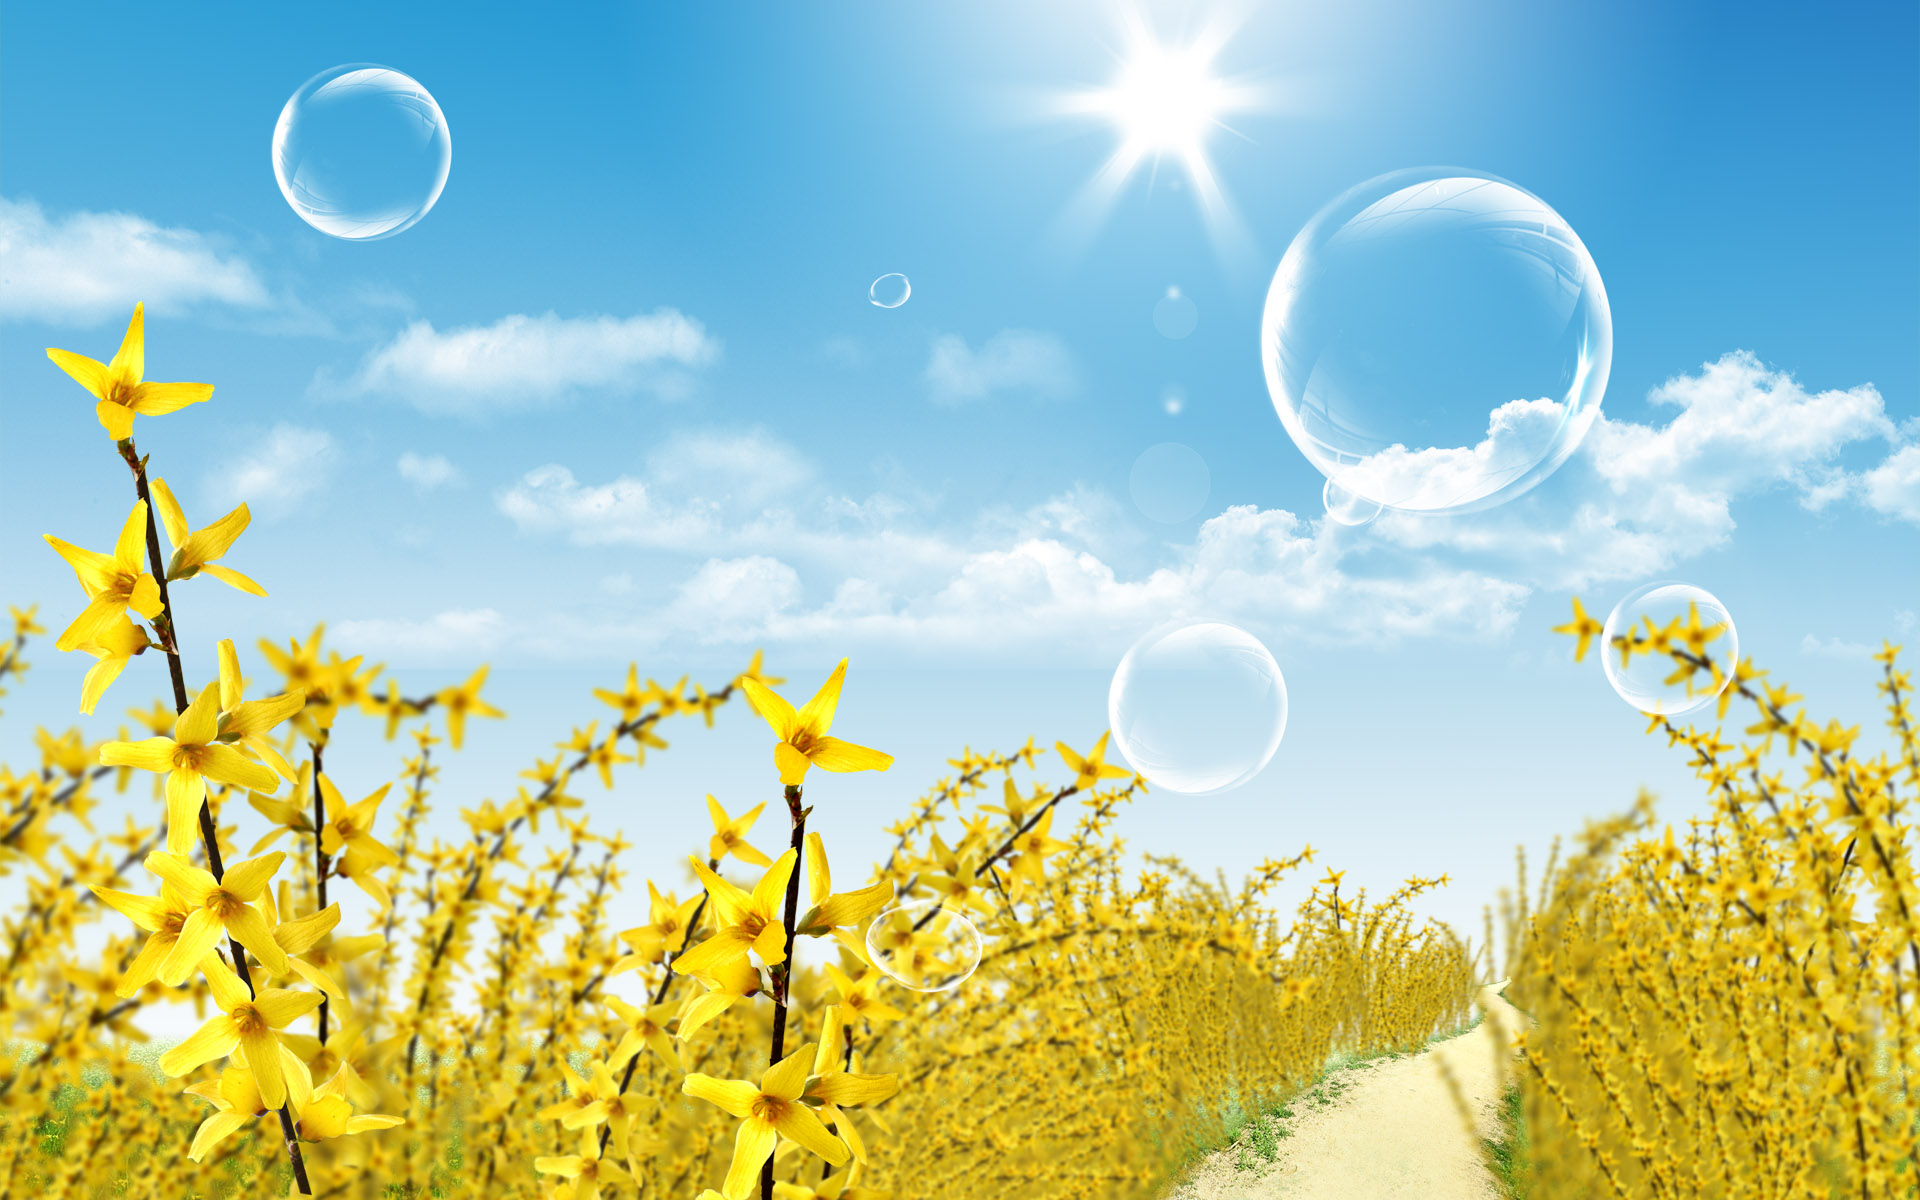 Scenery wallppaer yellow flowers in spring Wallpaper